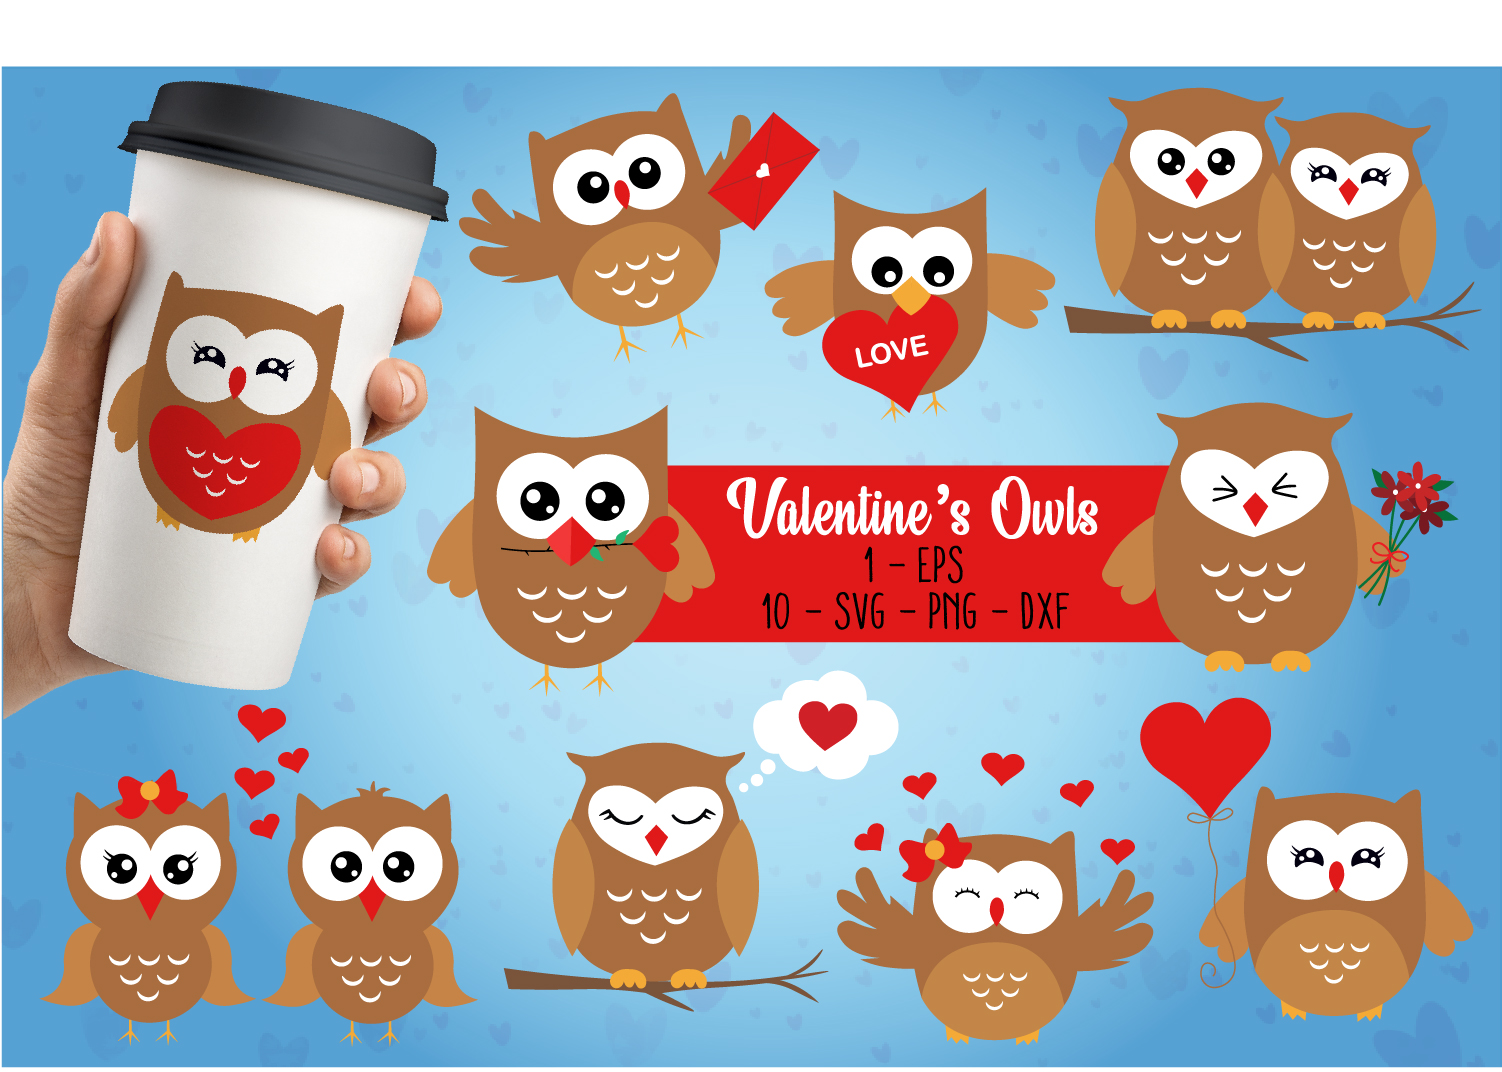 Download Free Valentines Owls Graphic By All About Svg Creative Fabrica for Cricut Explore, Silhouette and other cutting machines.